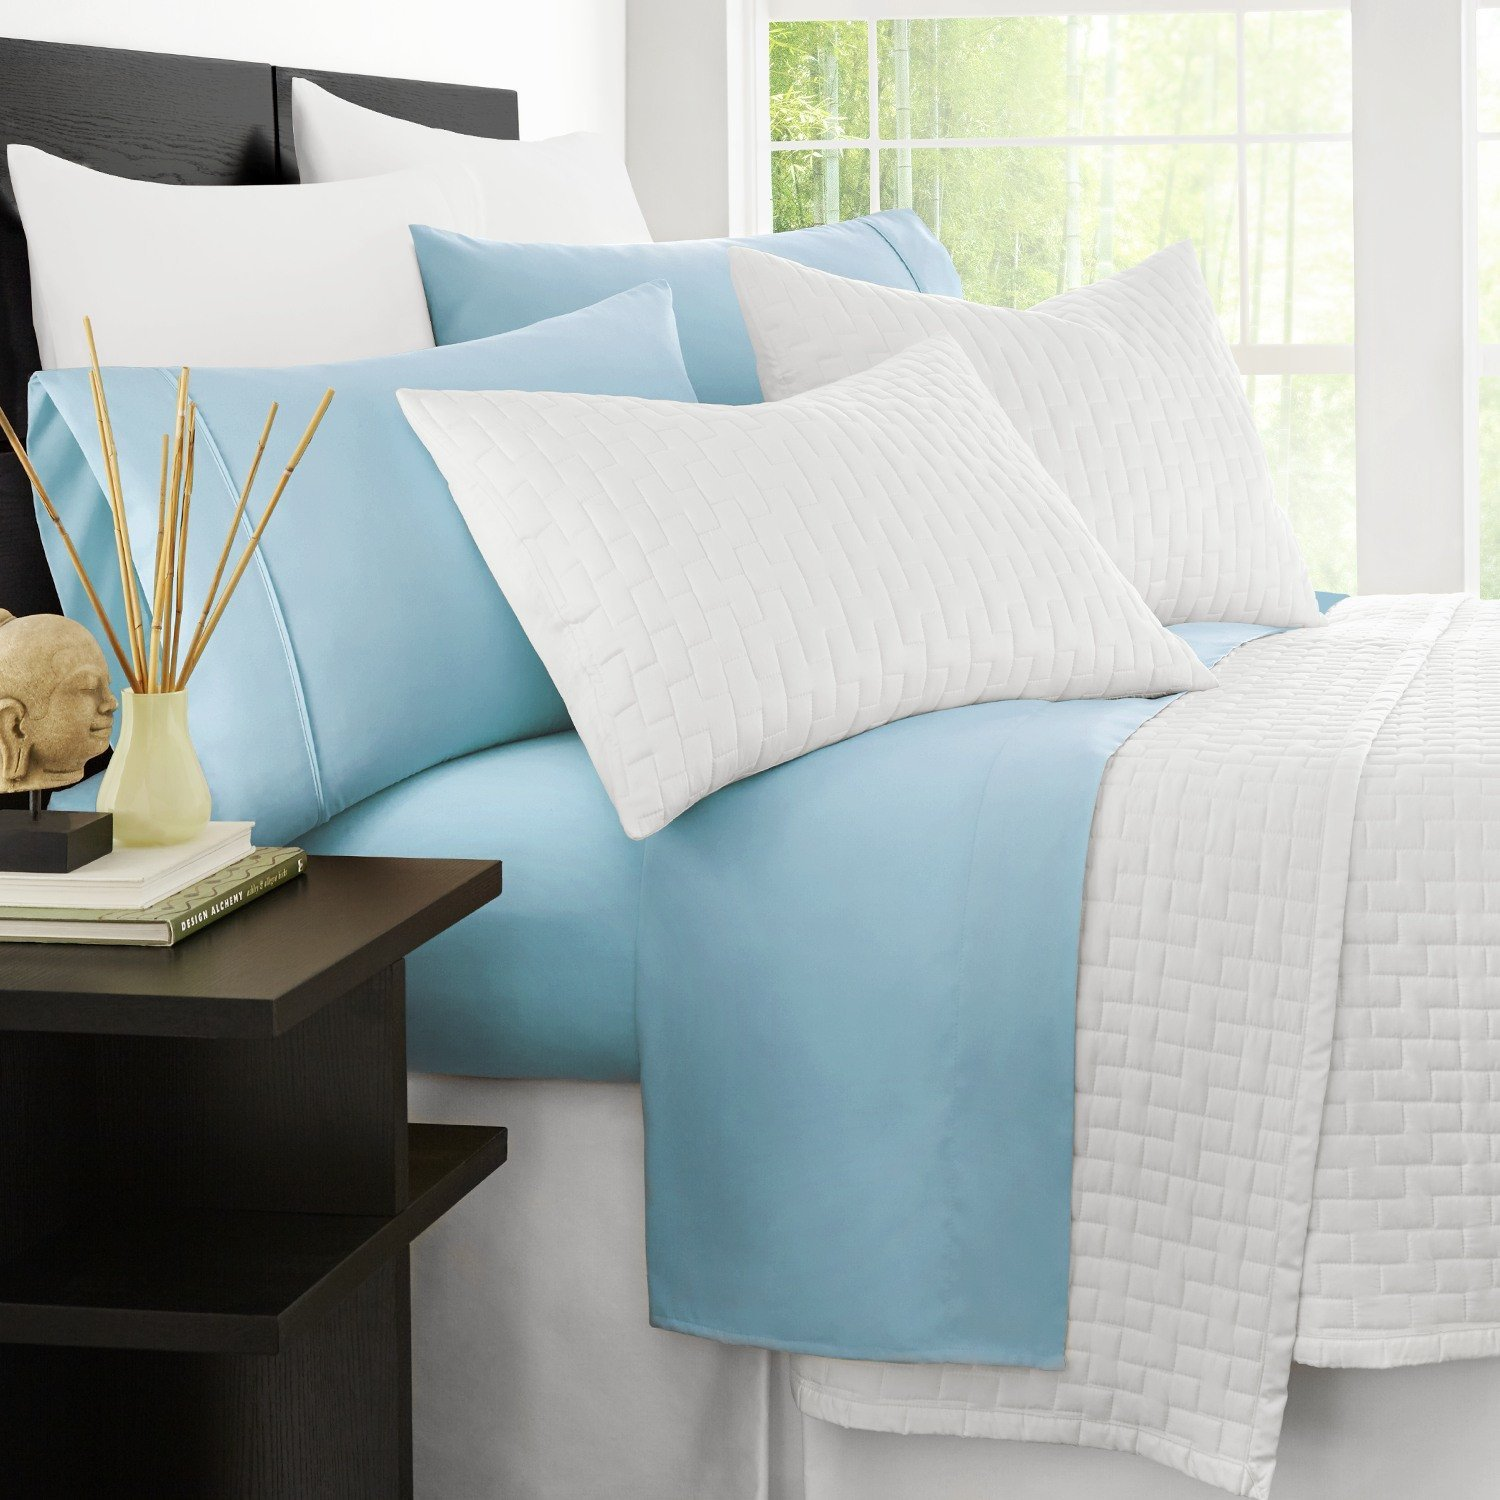 Zen Bamboo Luxury 1500 Series Bed Sheets - Eco-Friendly, Hypoallergenic and Wrinkle Resistant Rayon Derived from Bamboo - 4-Piece - Queen - Sky Blue